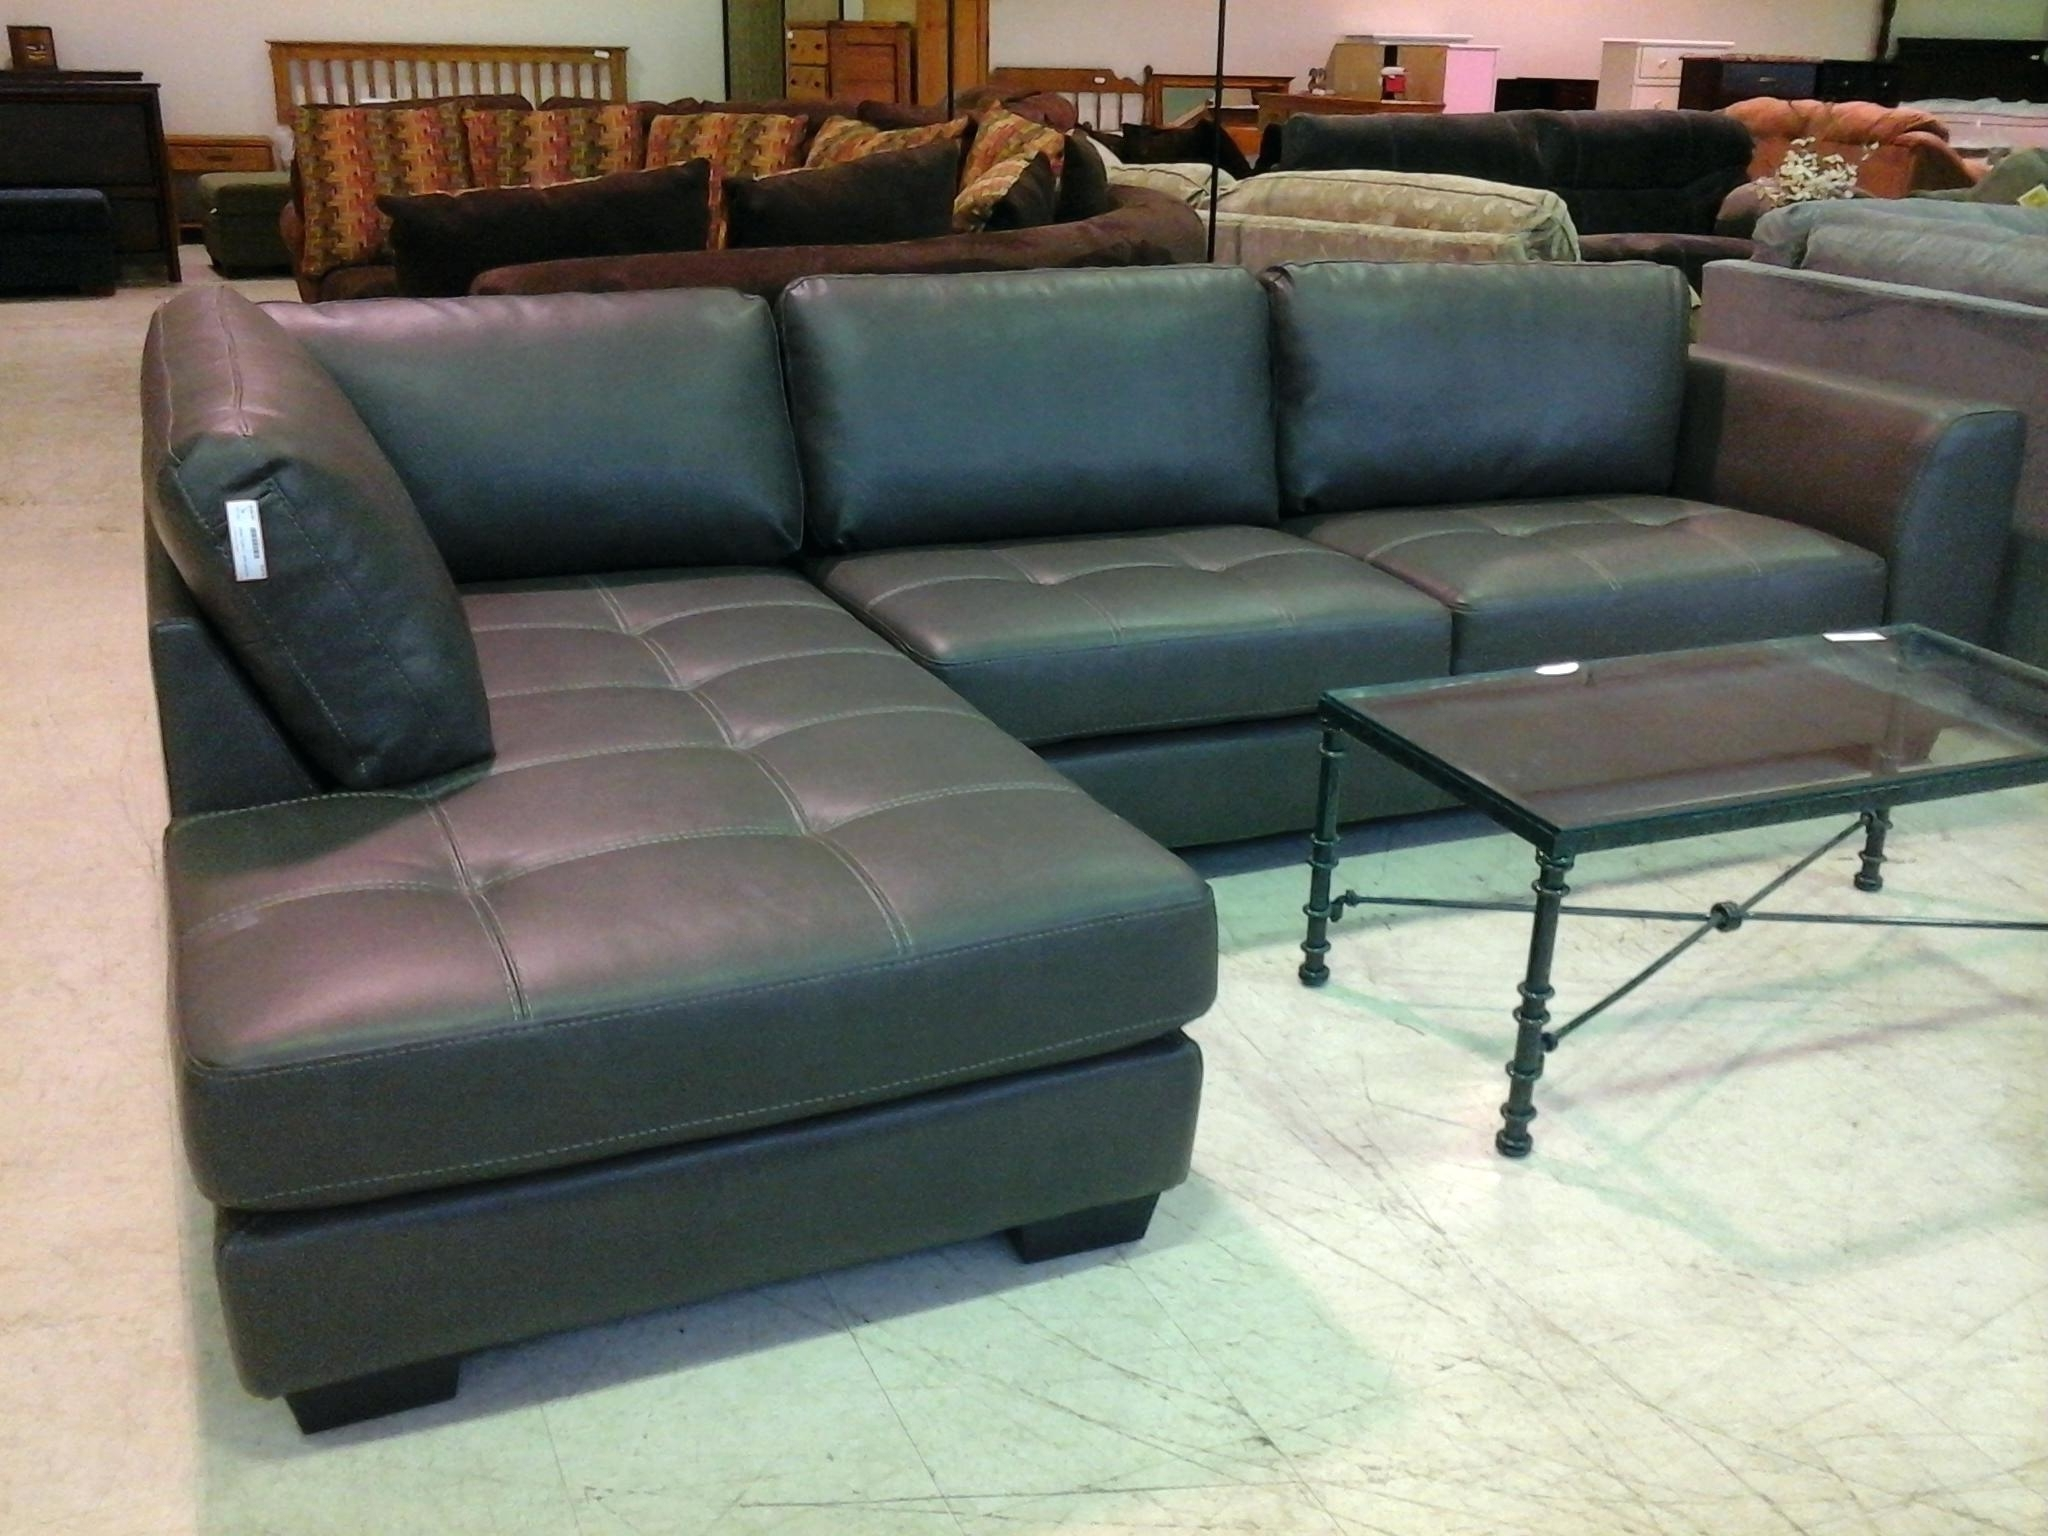 Fashionable Quebec Sectional Sofas Regarding Grey Sectional Sofa Canada Okaycreations Net Light Gray Fabric (View 13 of 15)